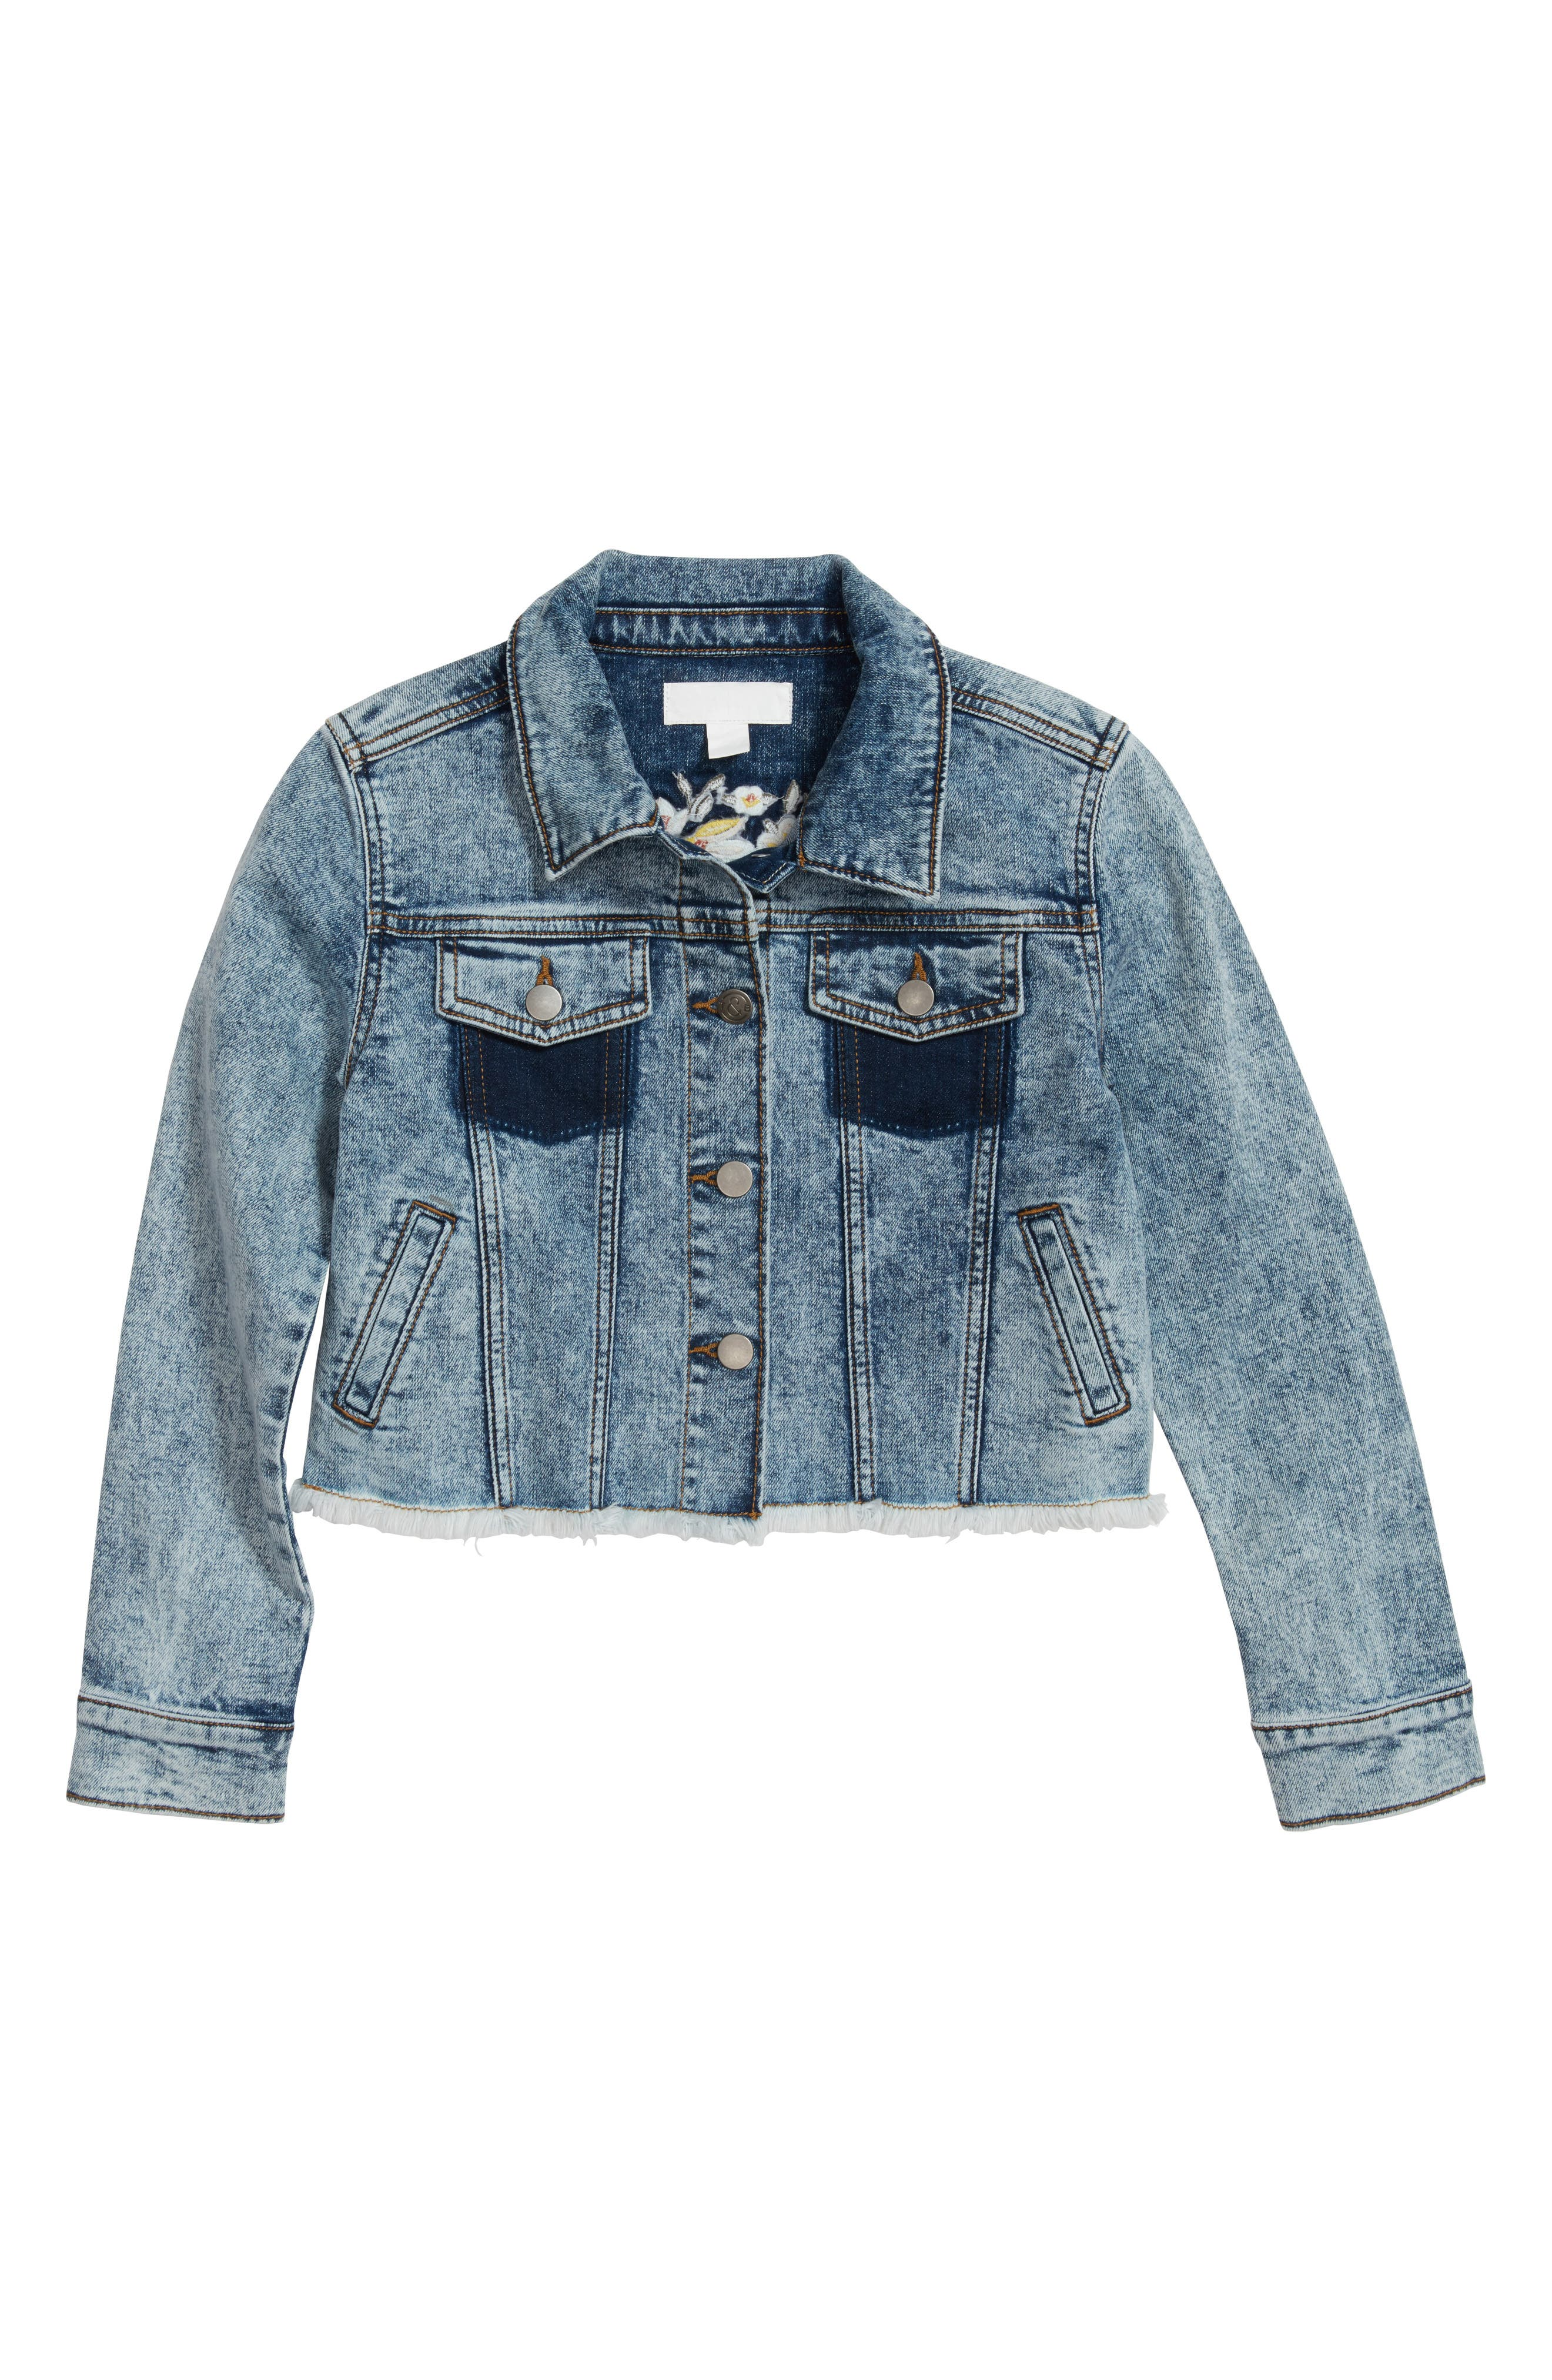 Embroidered Crop Denim Jacket,                             Main thumbnail 1, color,                             Stone Cold Wash